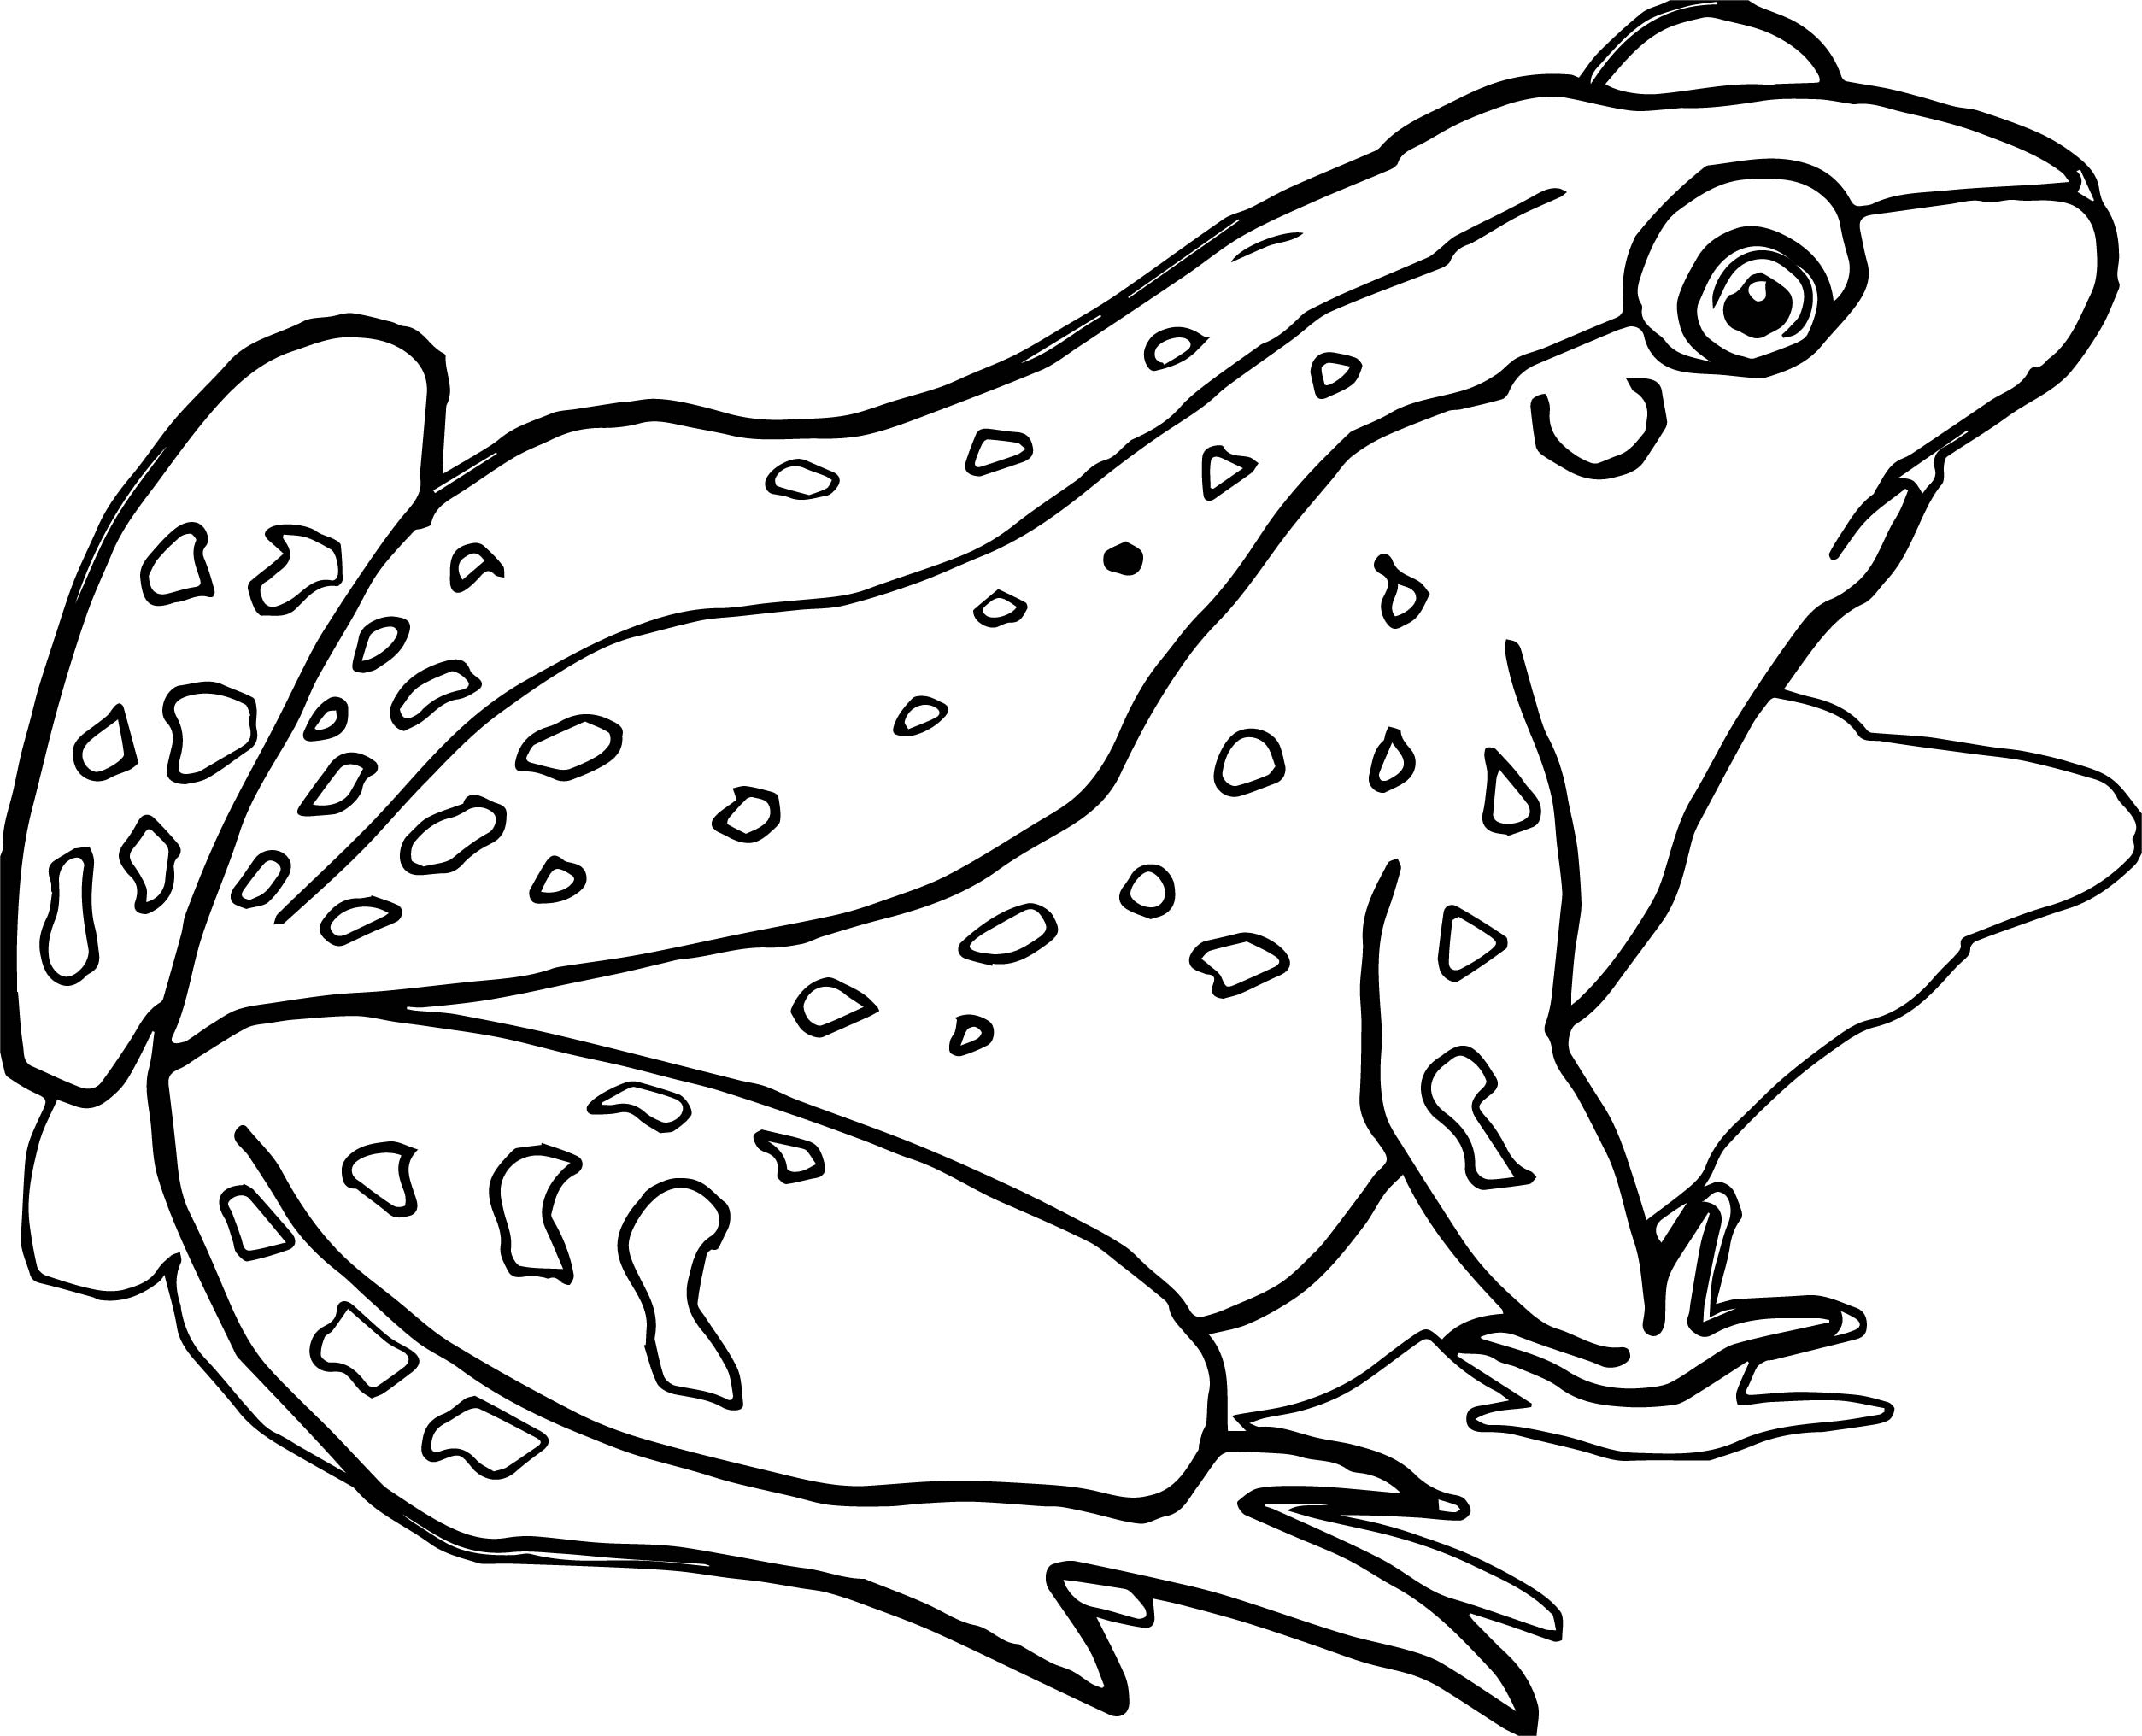 2507x2032 Frog Jumper Coloring Page